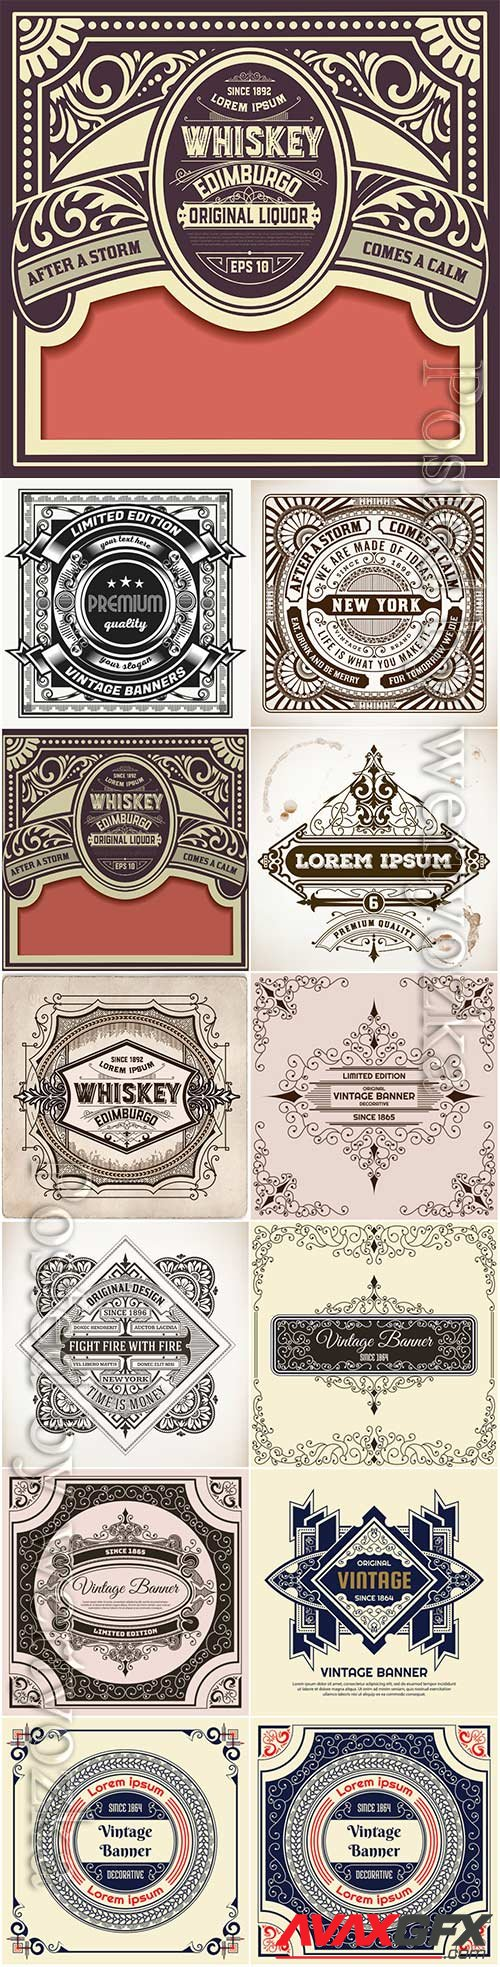 Labels in vintage style, vector elements